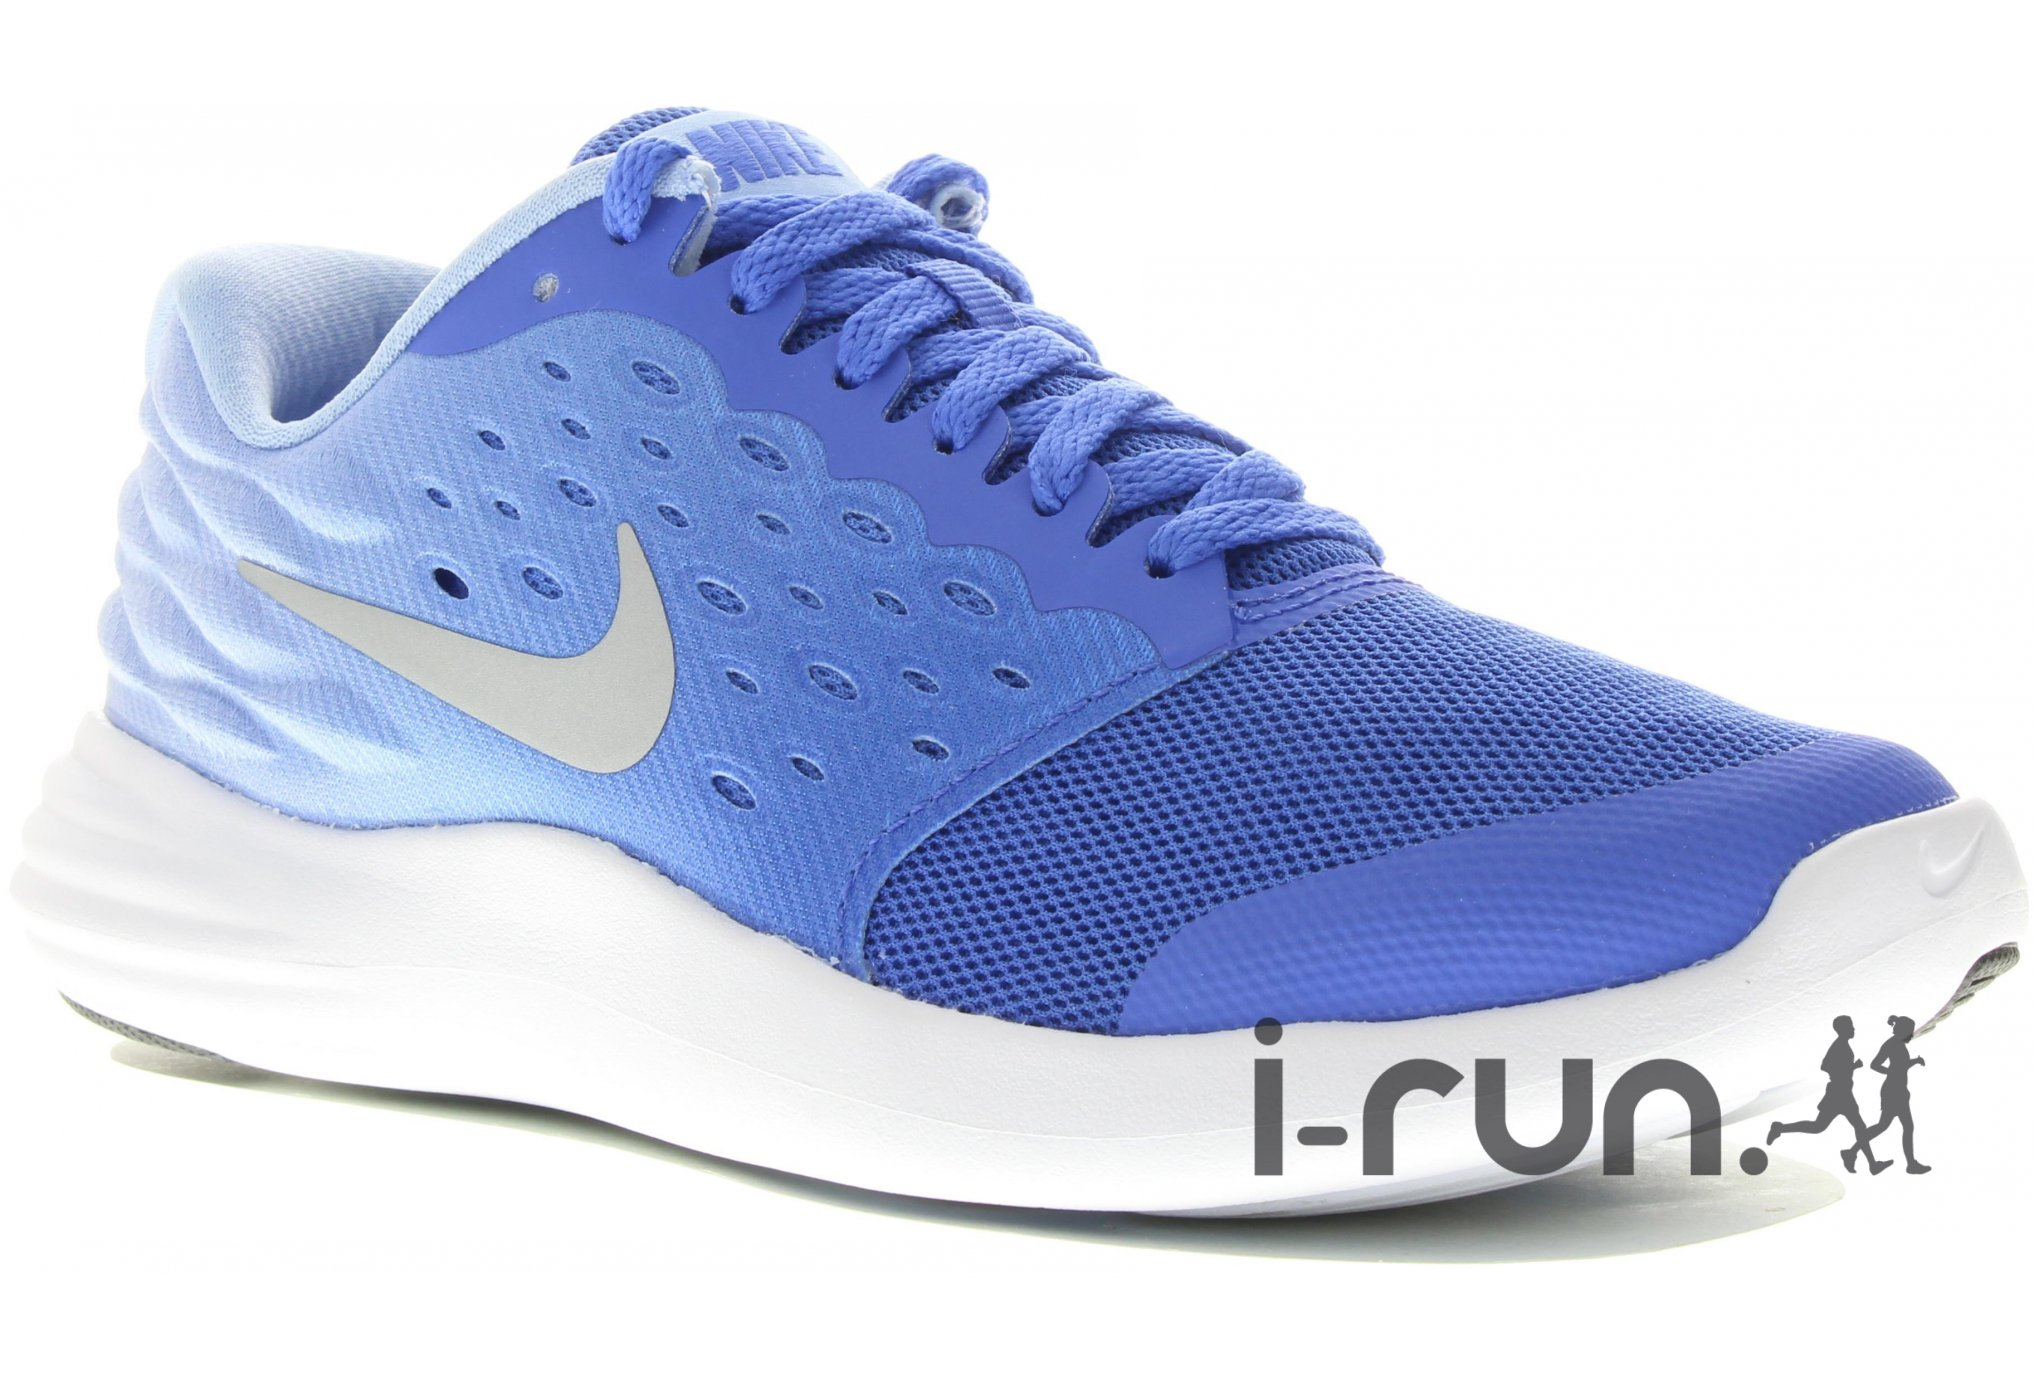 Femme Lunarstelos Gs Session Nike Chaussures Trail Running rdCoBxe